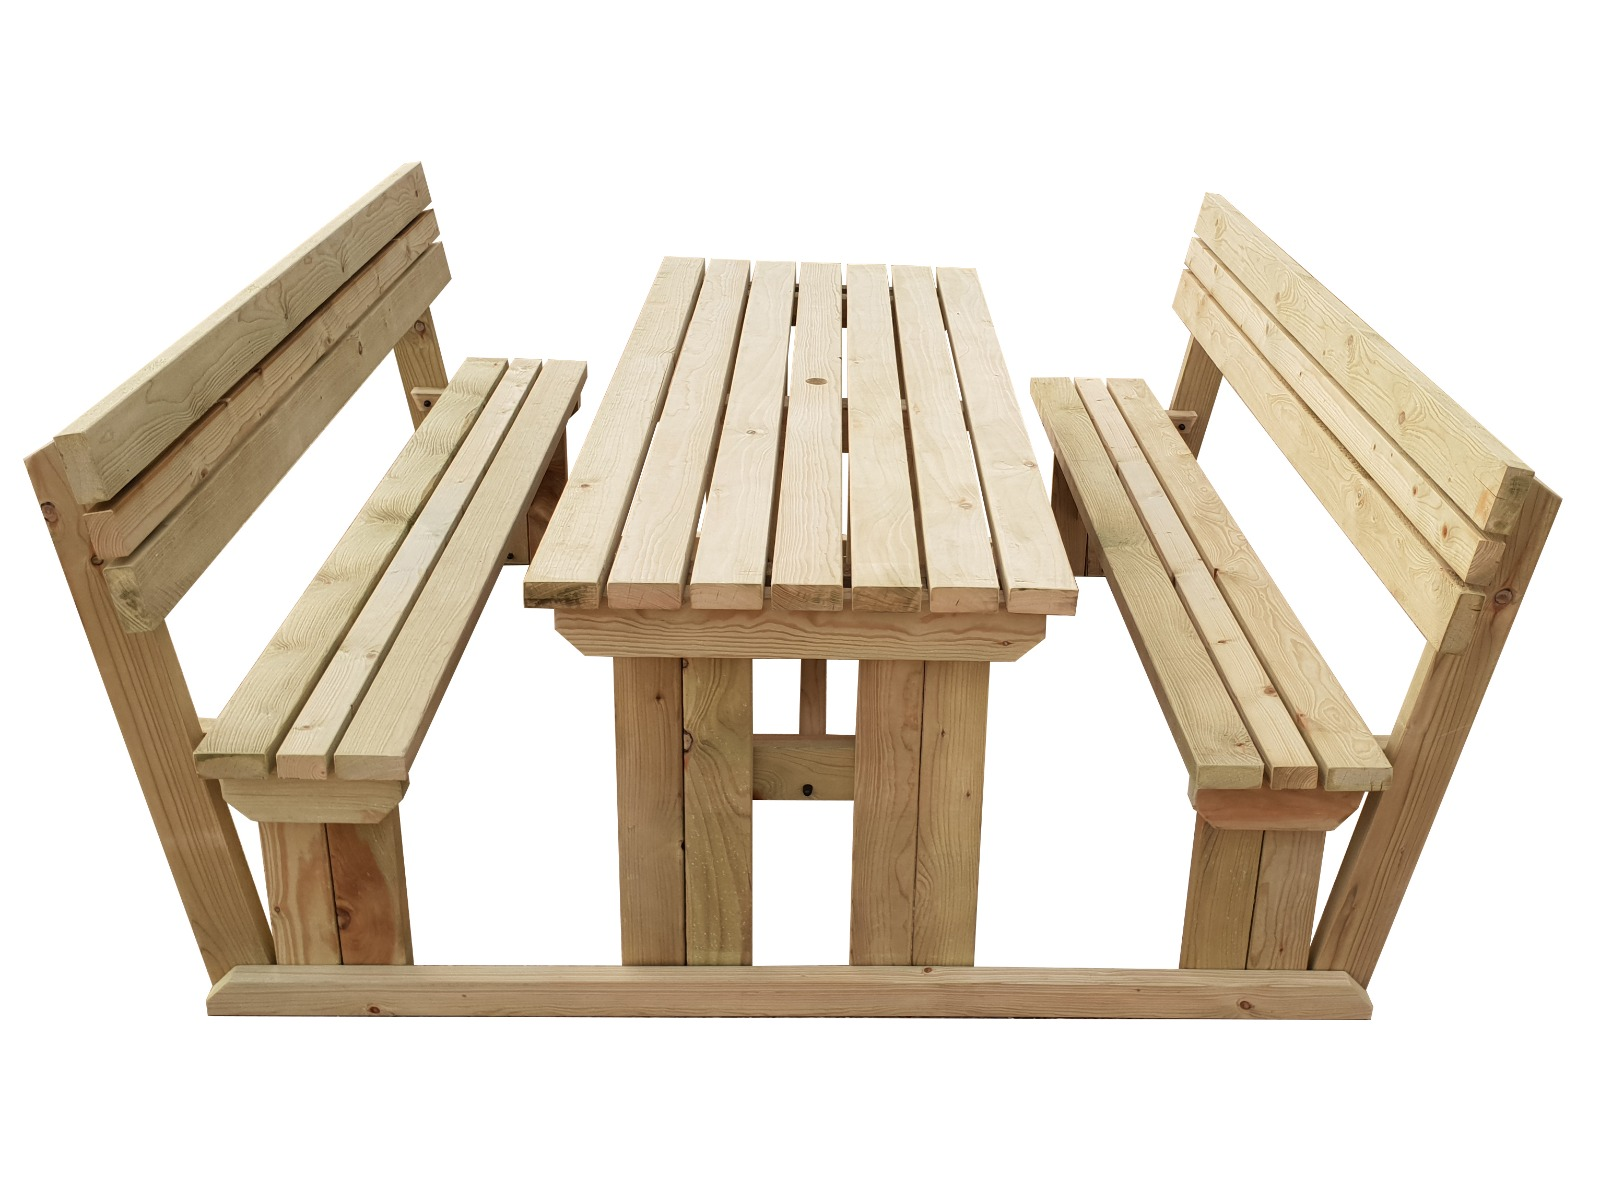 Red Oak Kitchen Table, Picnic Tables With Back Rest Fast And Free Delivery Available Arbor Garden Solutions